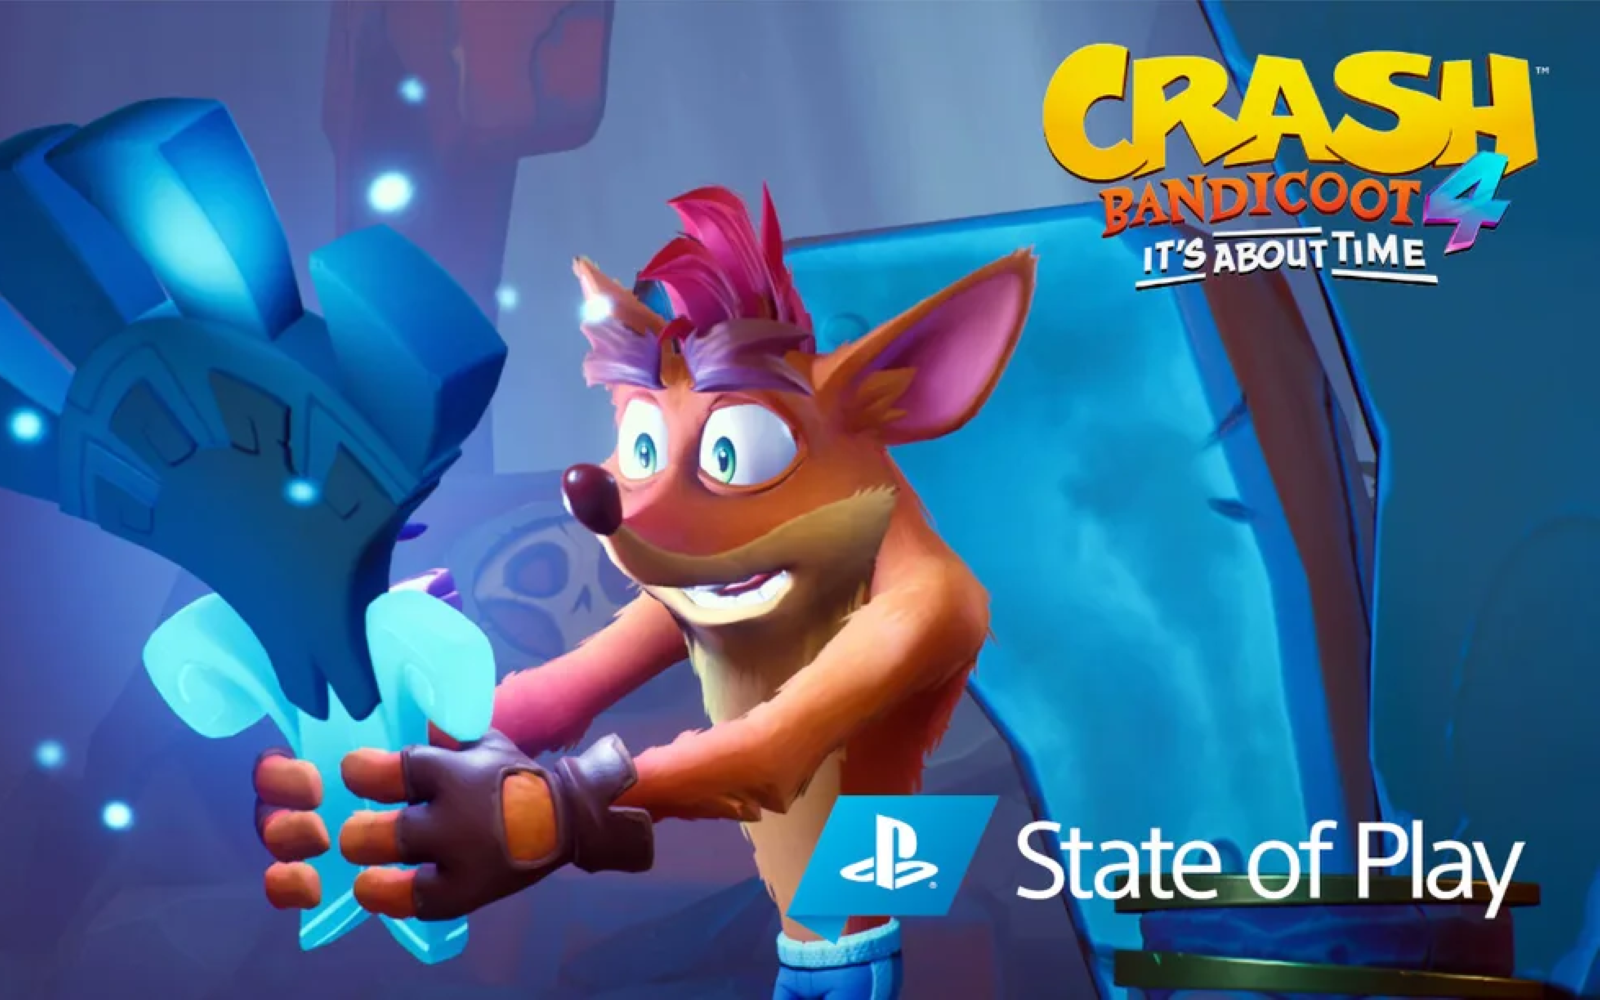 New Mode & Playable Character Revealed For Crash Bandicoot 4